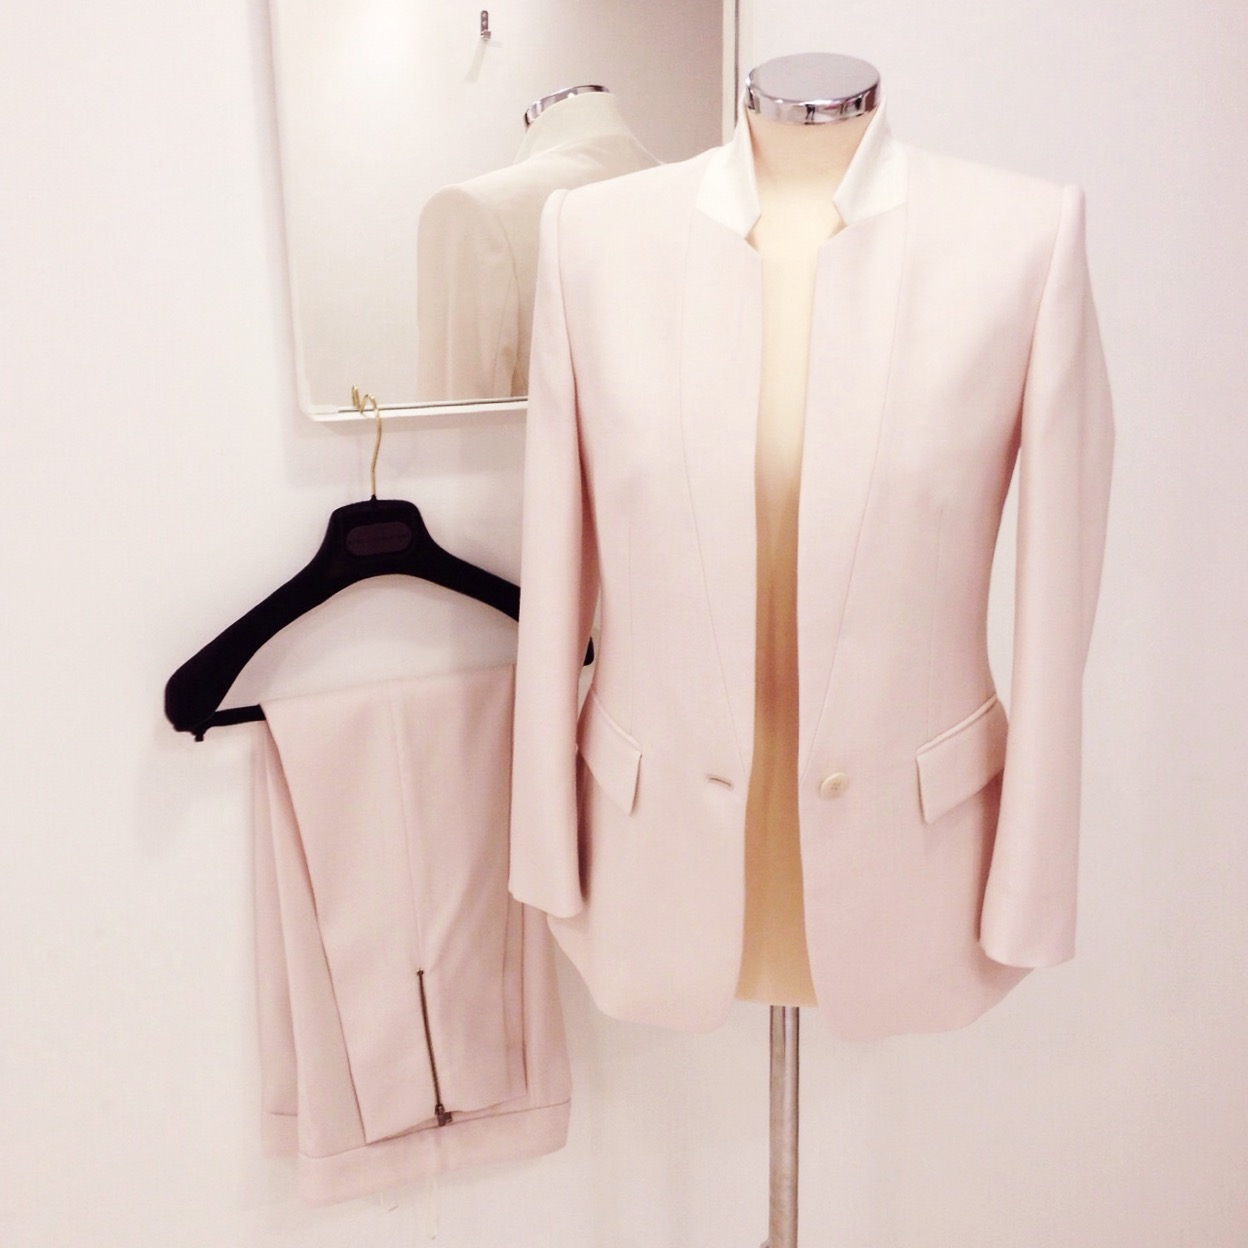 stella-mccartney-suit.jpg